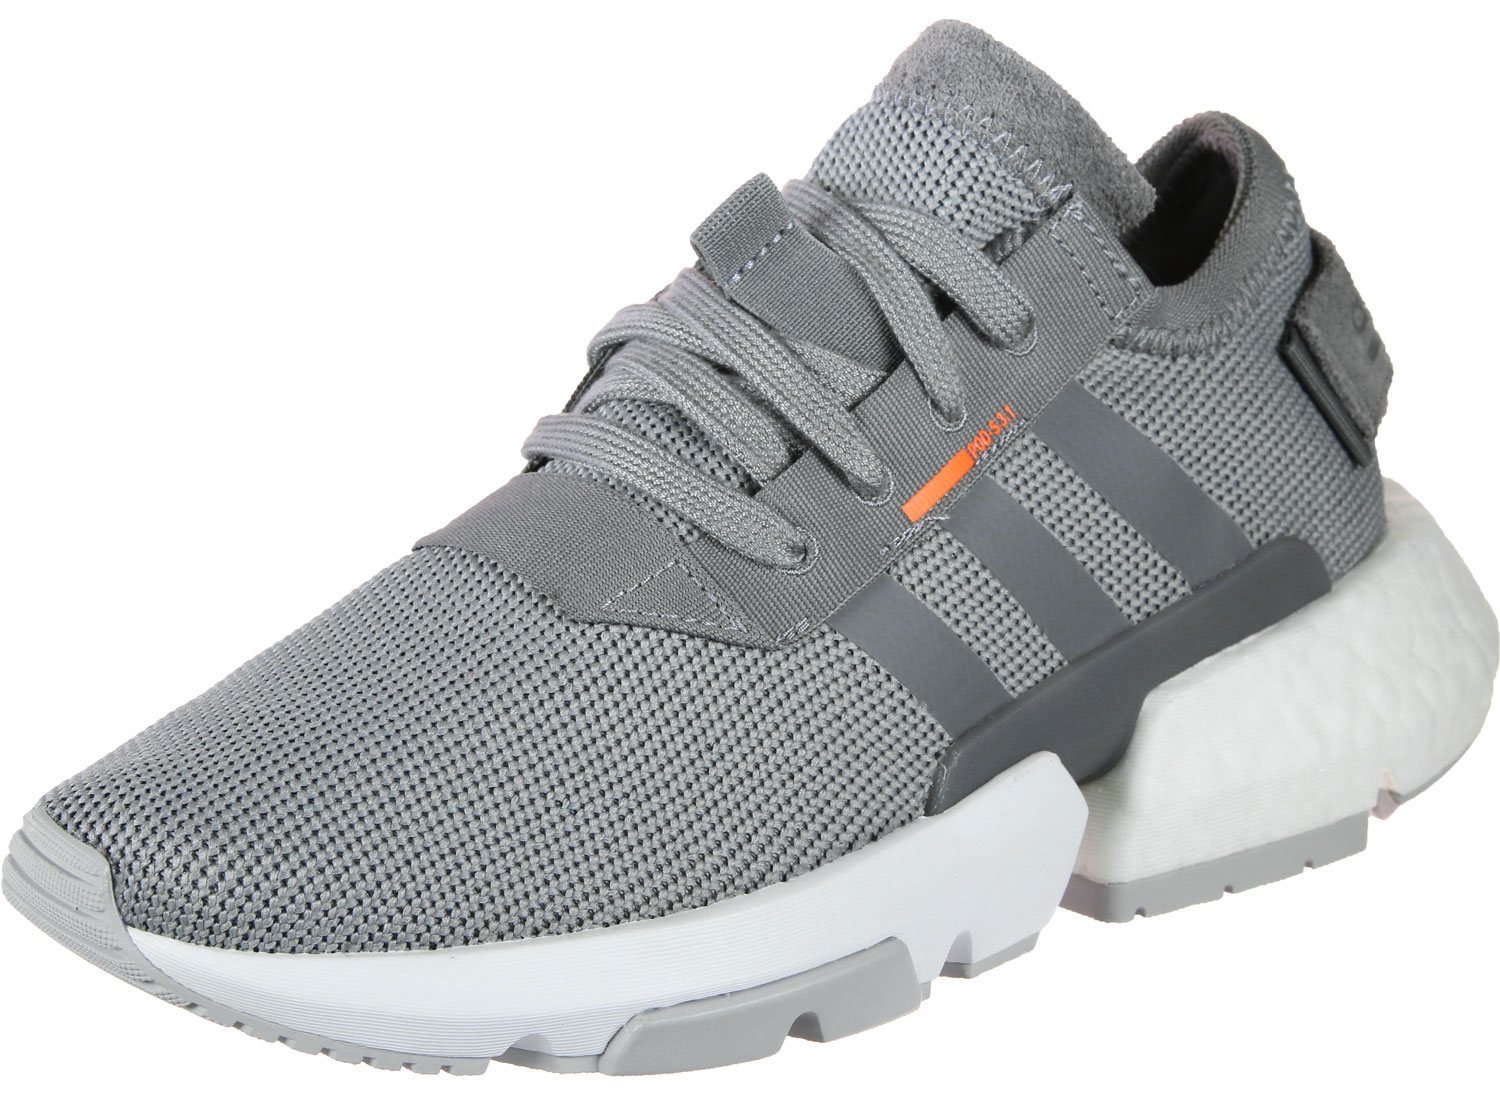 adidas POD-S3.1 - Sneakers Low at Stylefile